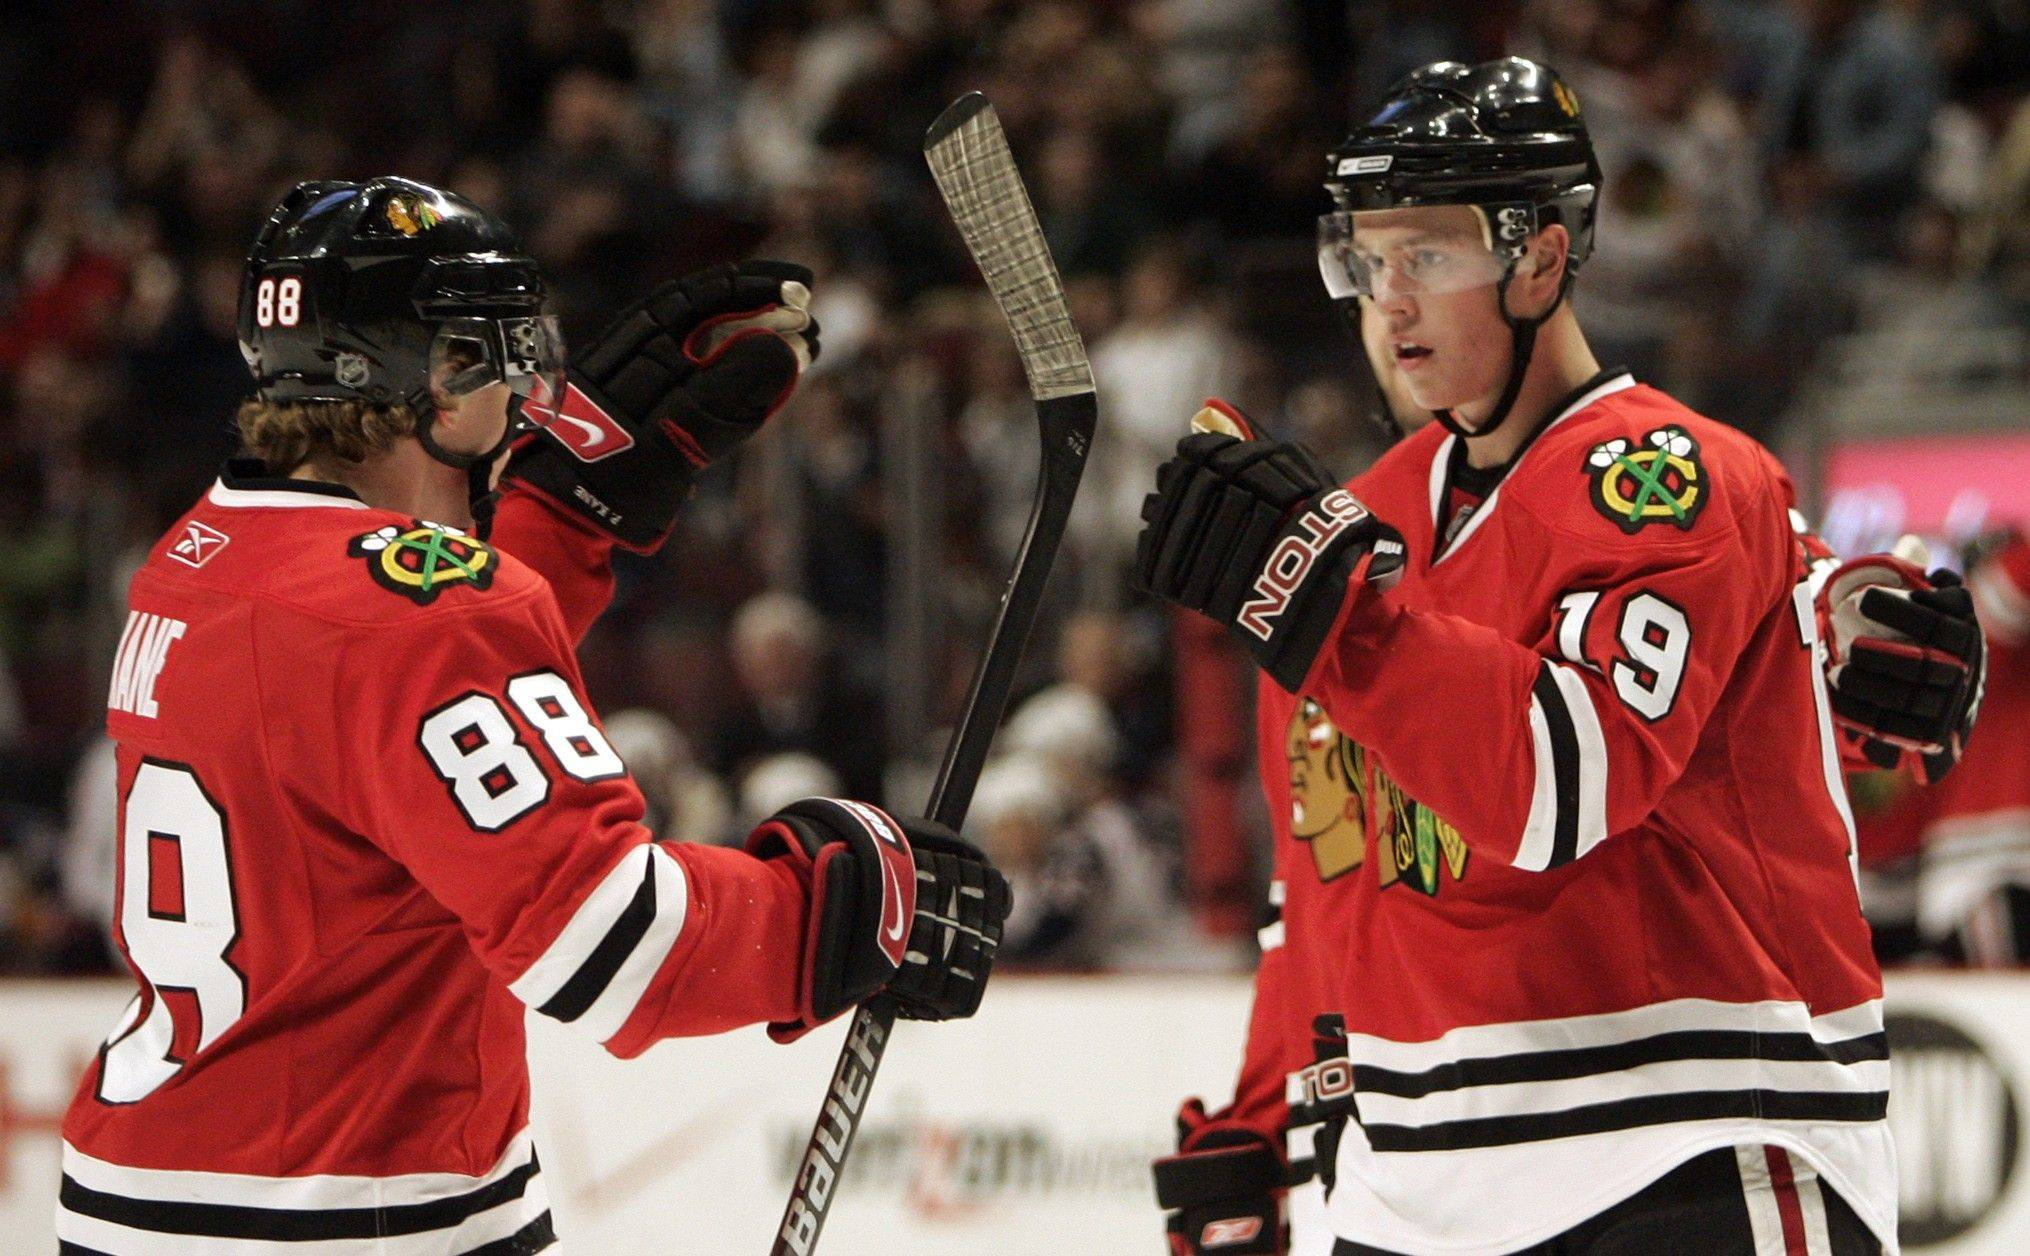 Chicago Blackhawks' Jonathan Toews, right, celebrates a goal with teammate Patrick Kane.